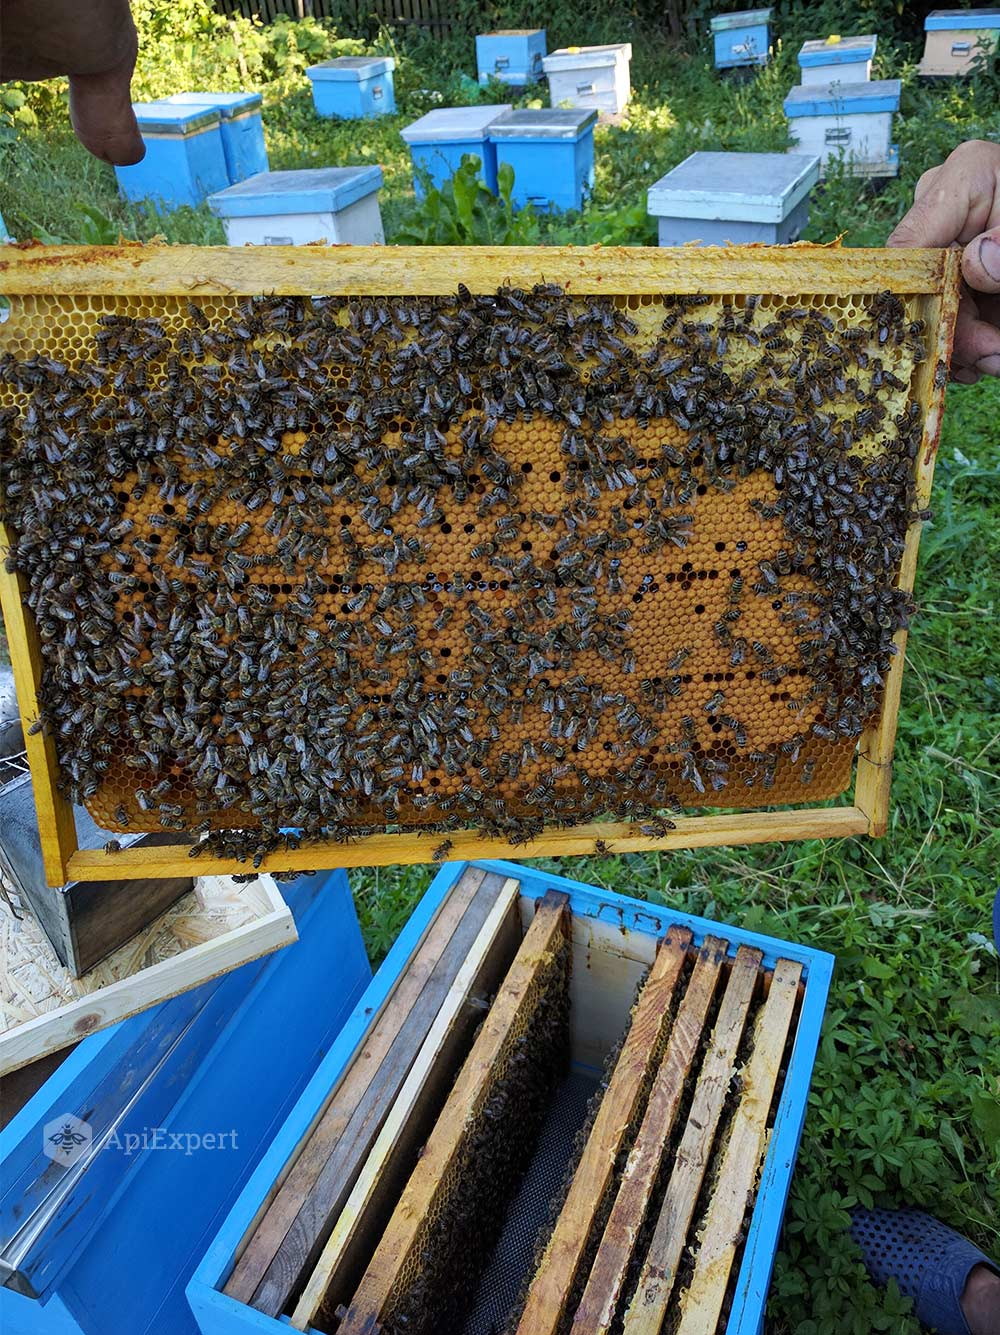 Bee Swarms on 6 Dadant Frames • ApiExpert